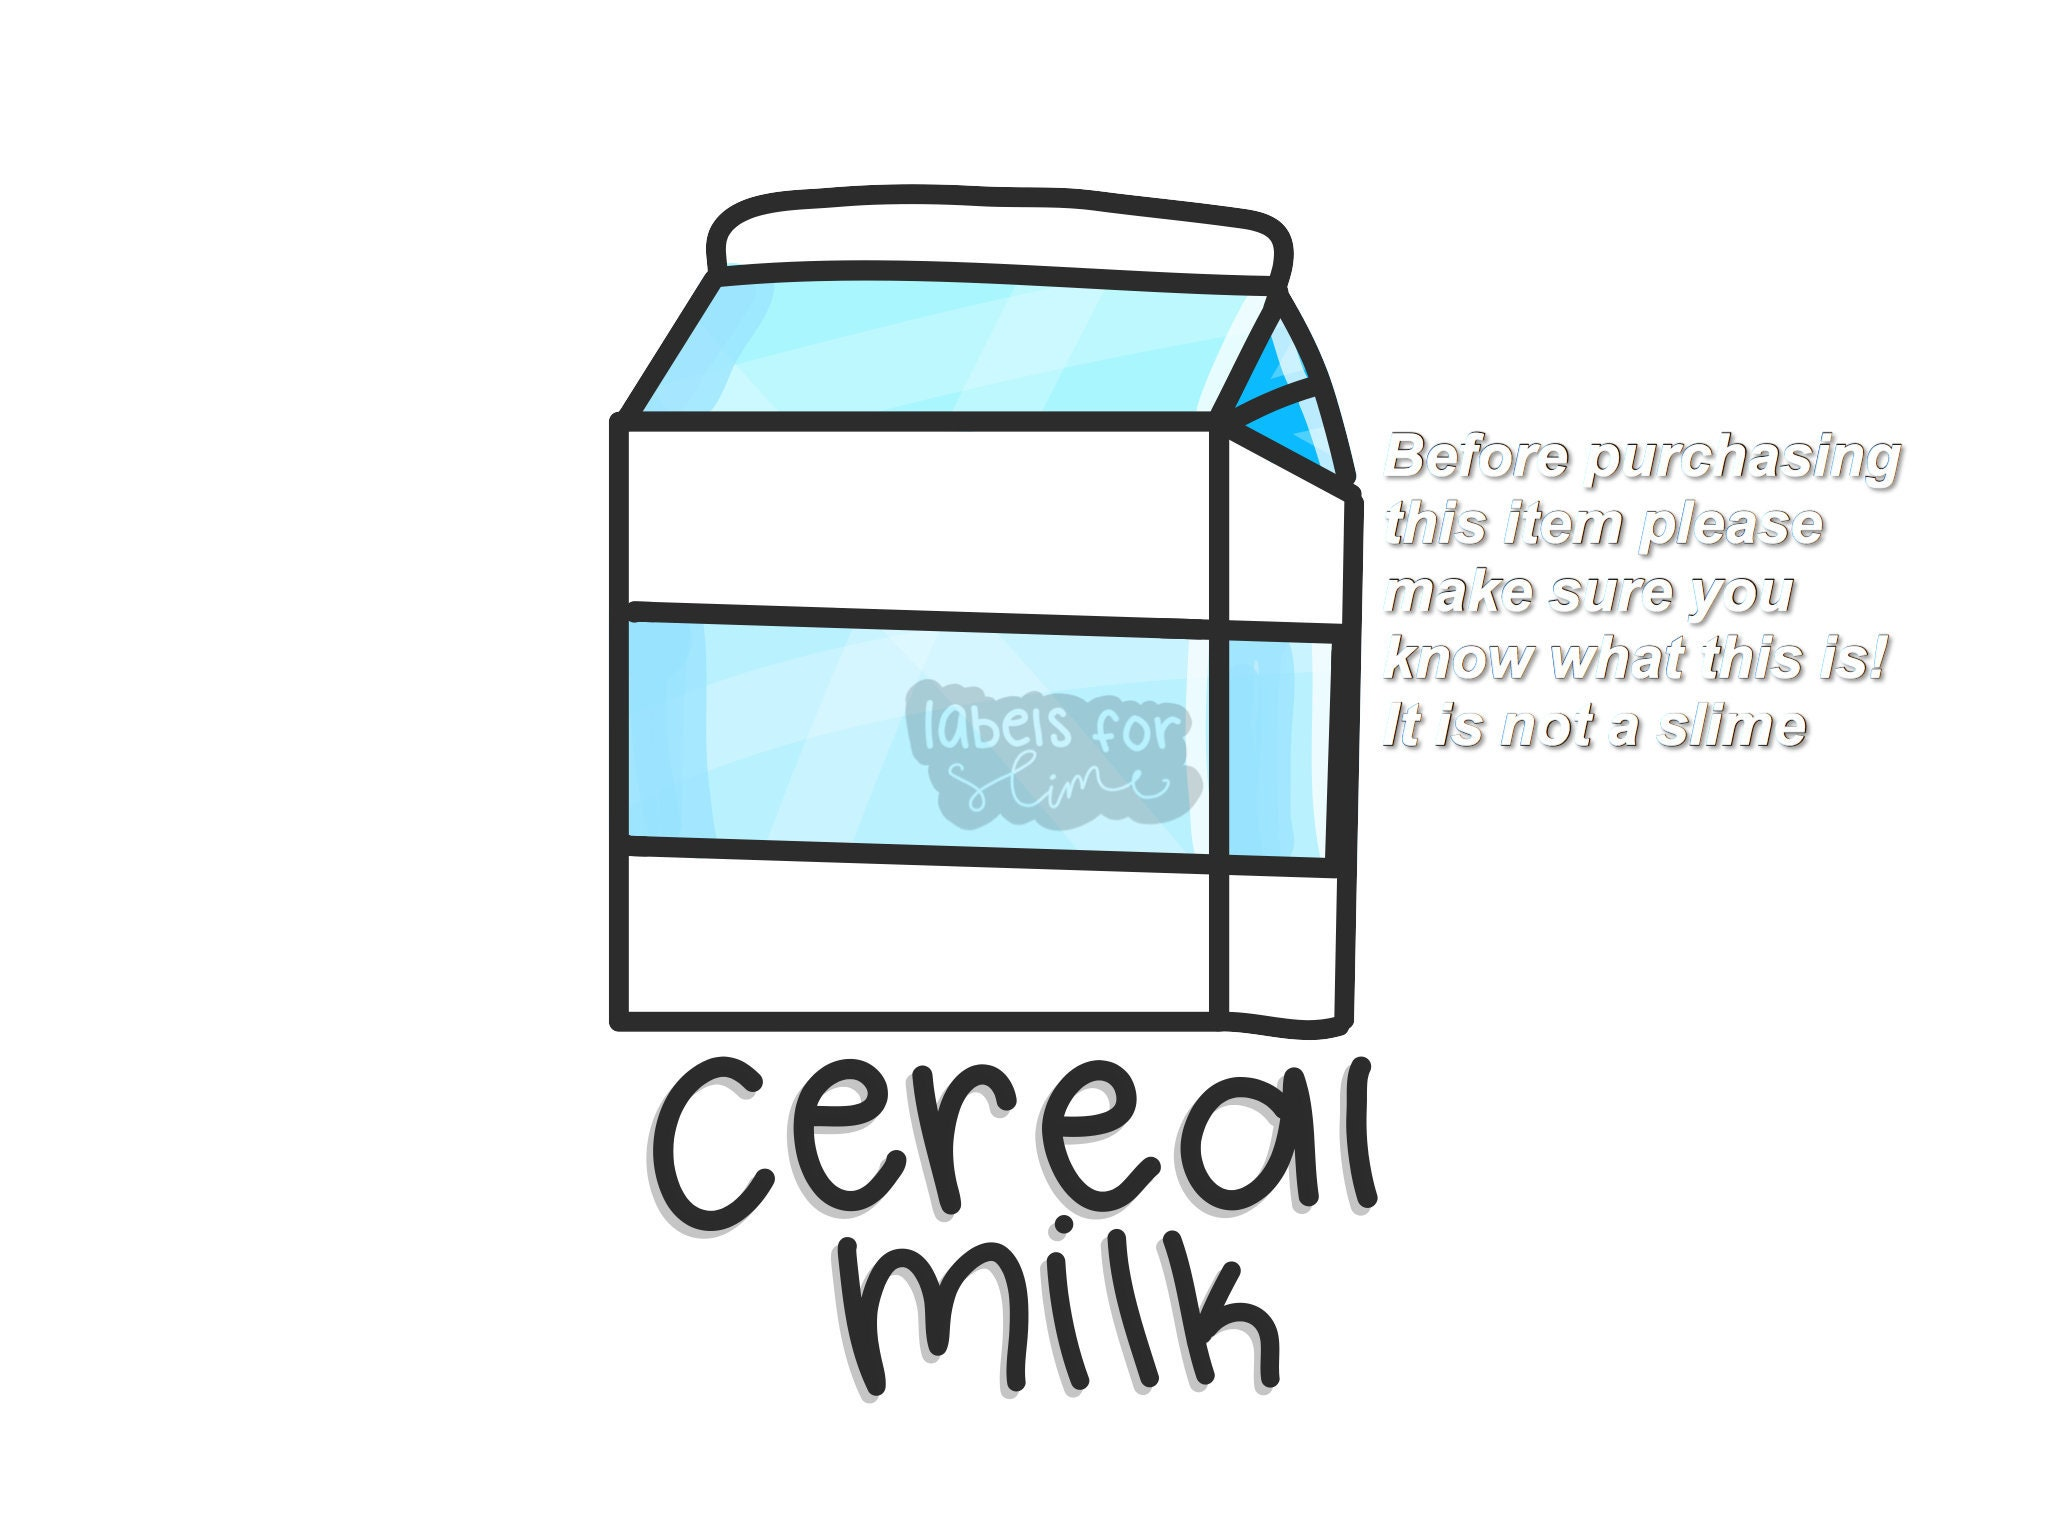 Cereal milk slime label ccuart Gallery